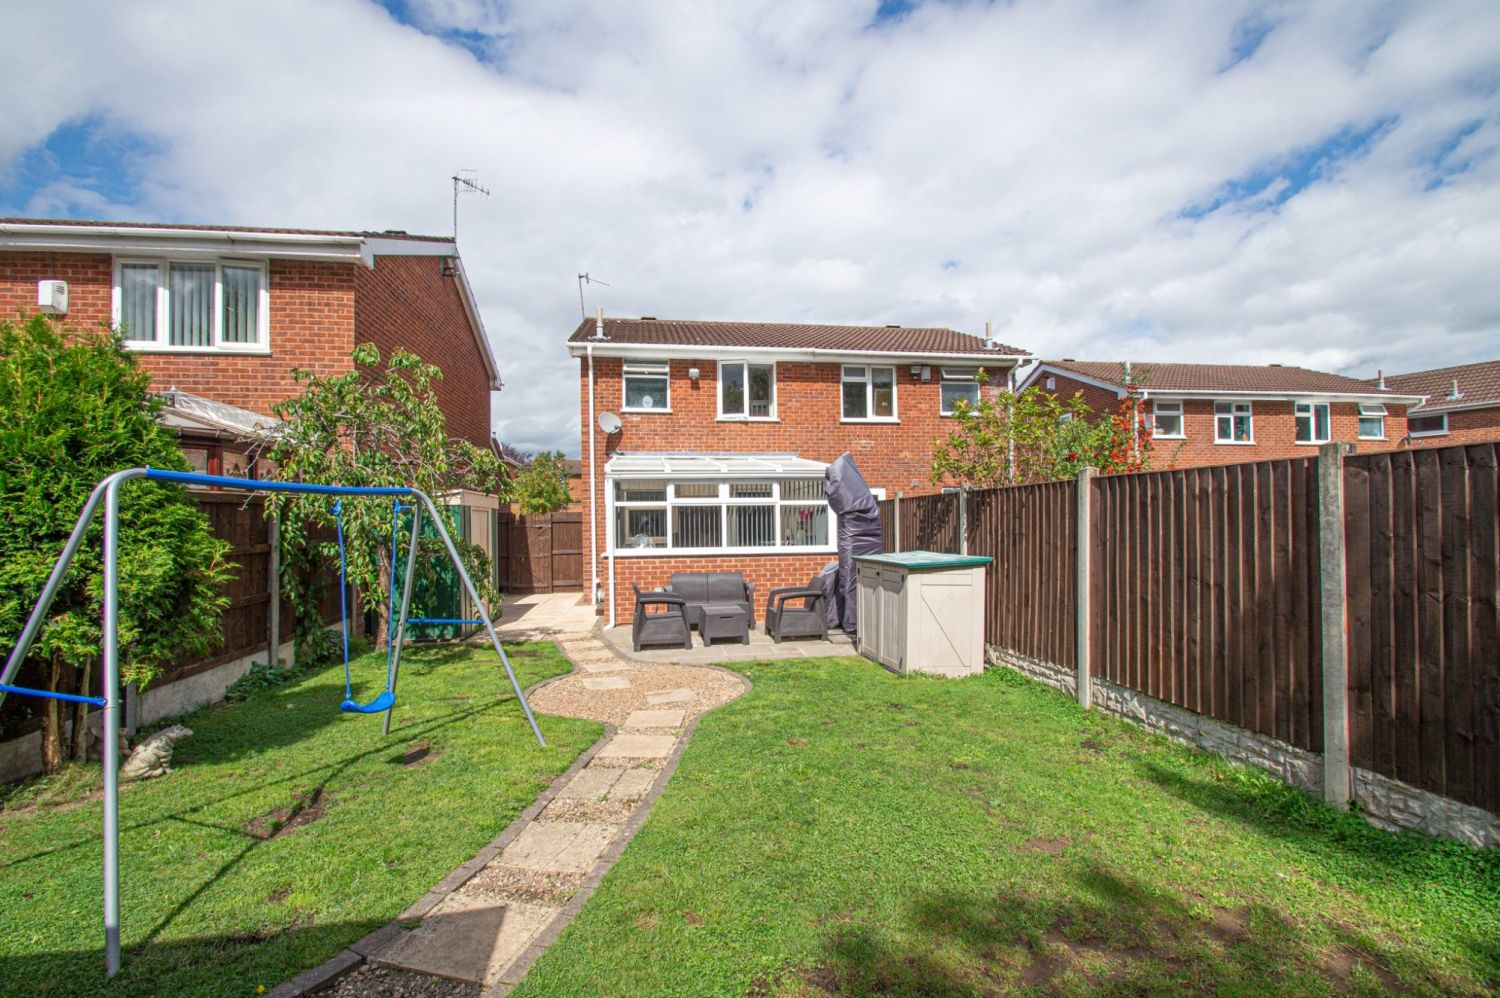 2 bed semi-detached for sale in Brayford Avenue, Brierley Hill 12